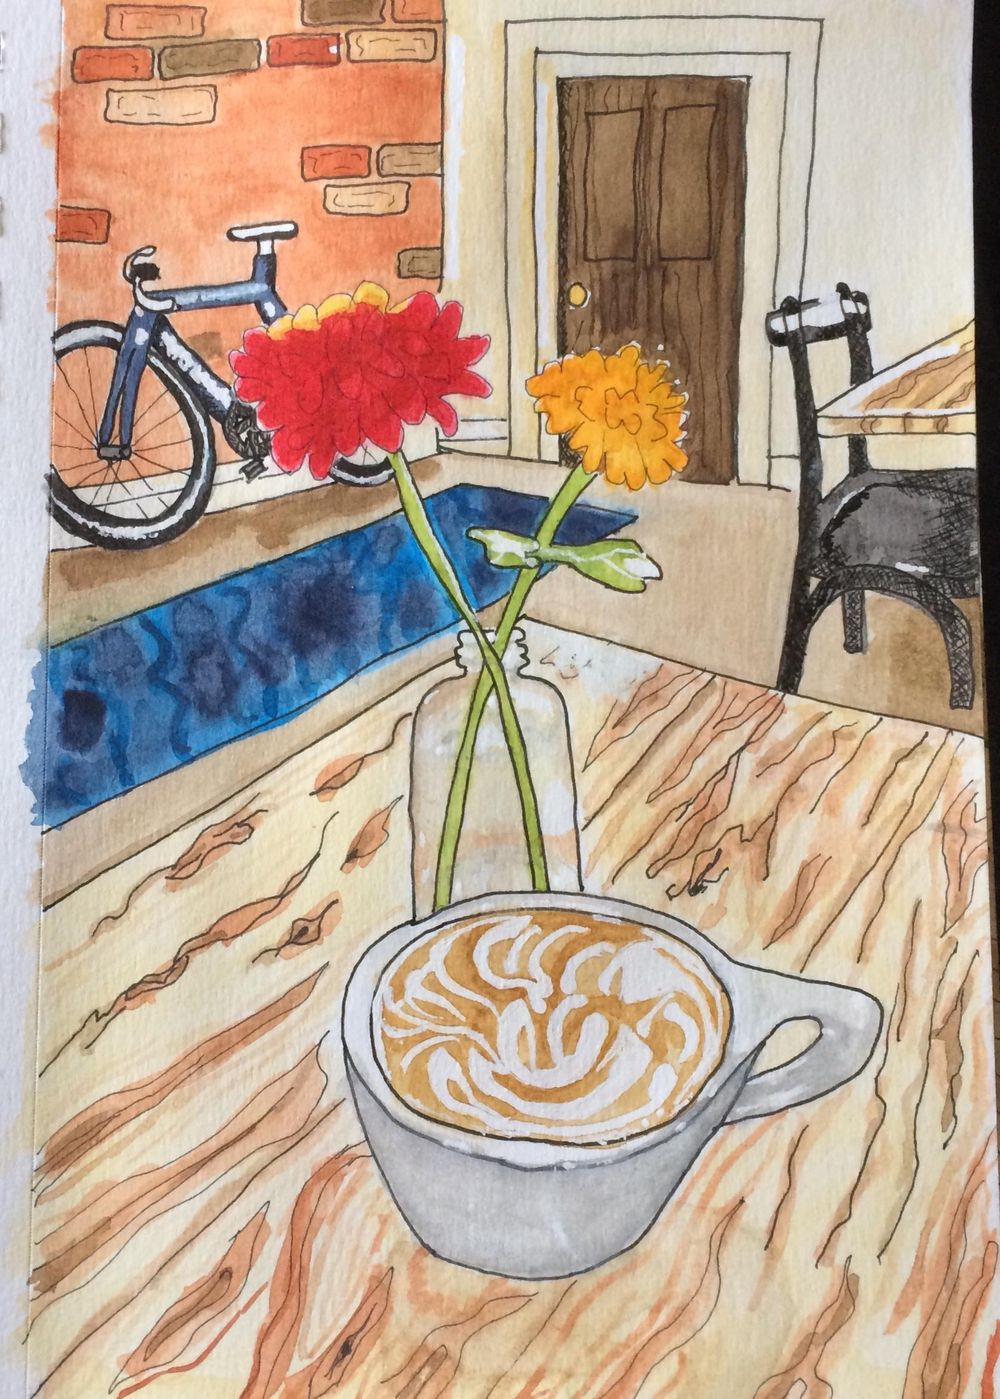 Coffee Shop - image 2 - student project